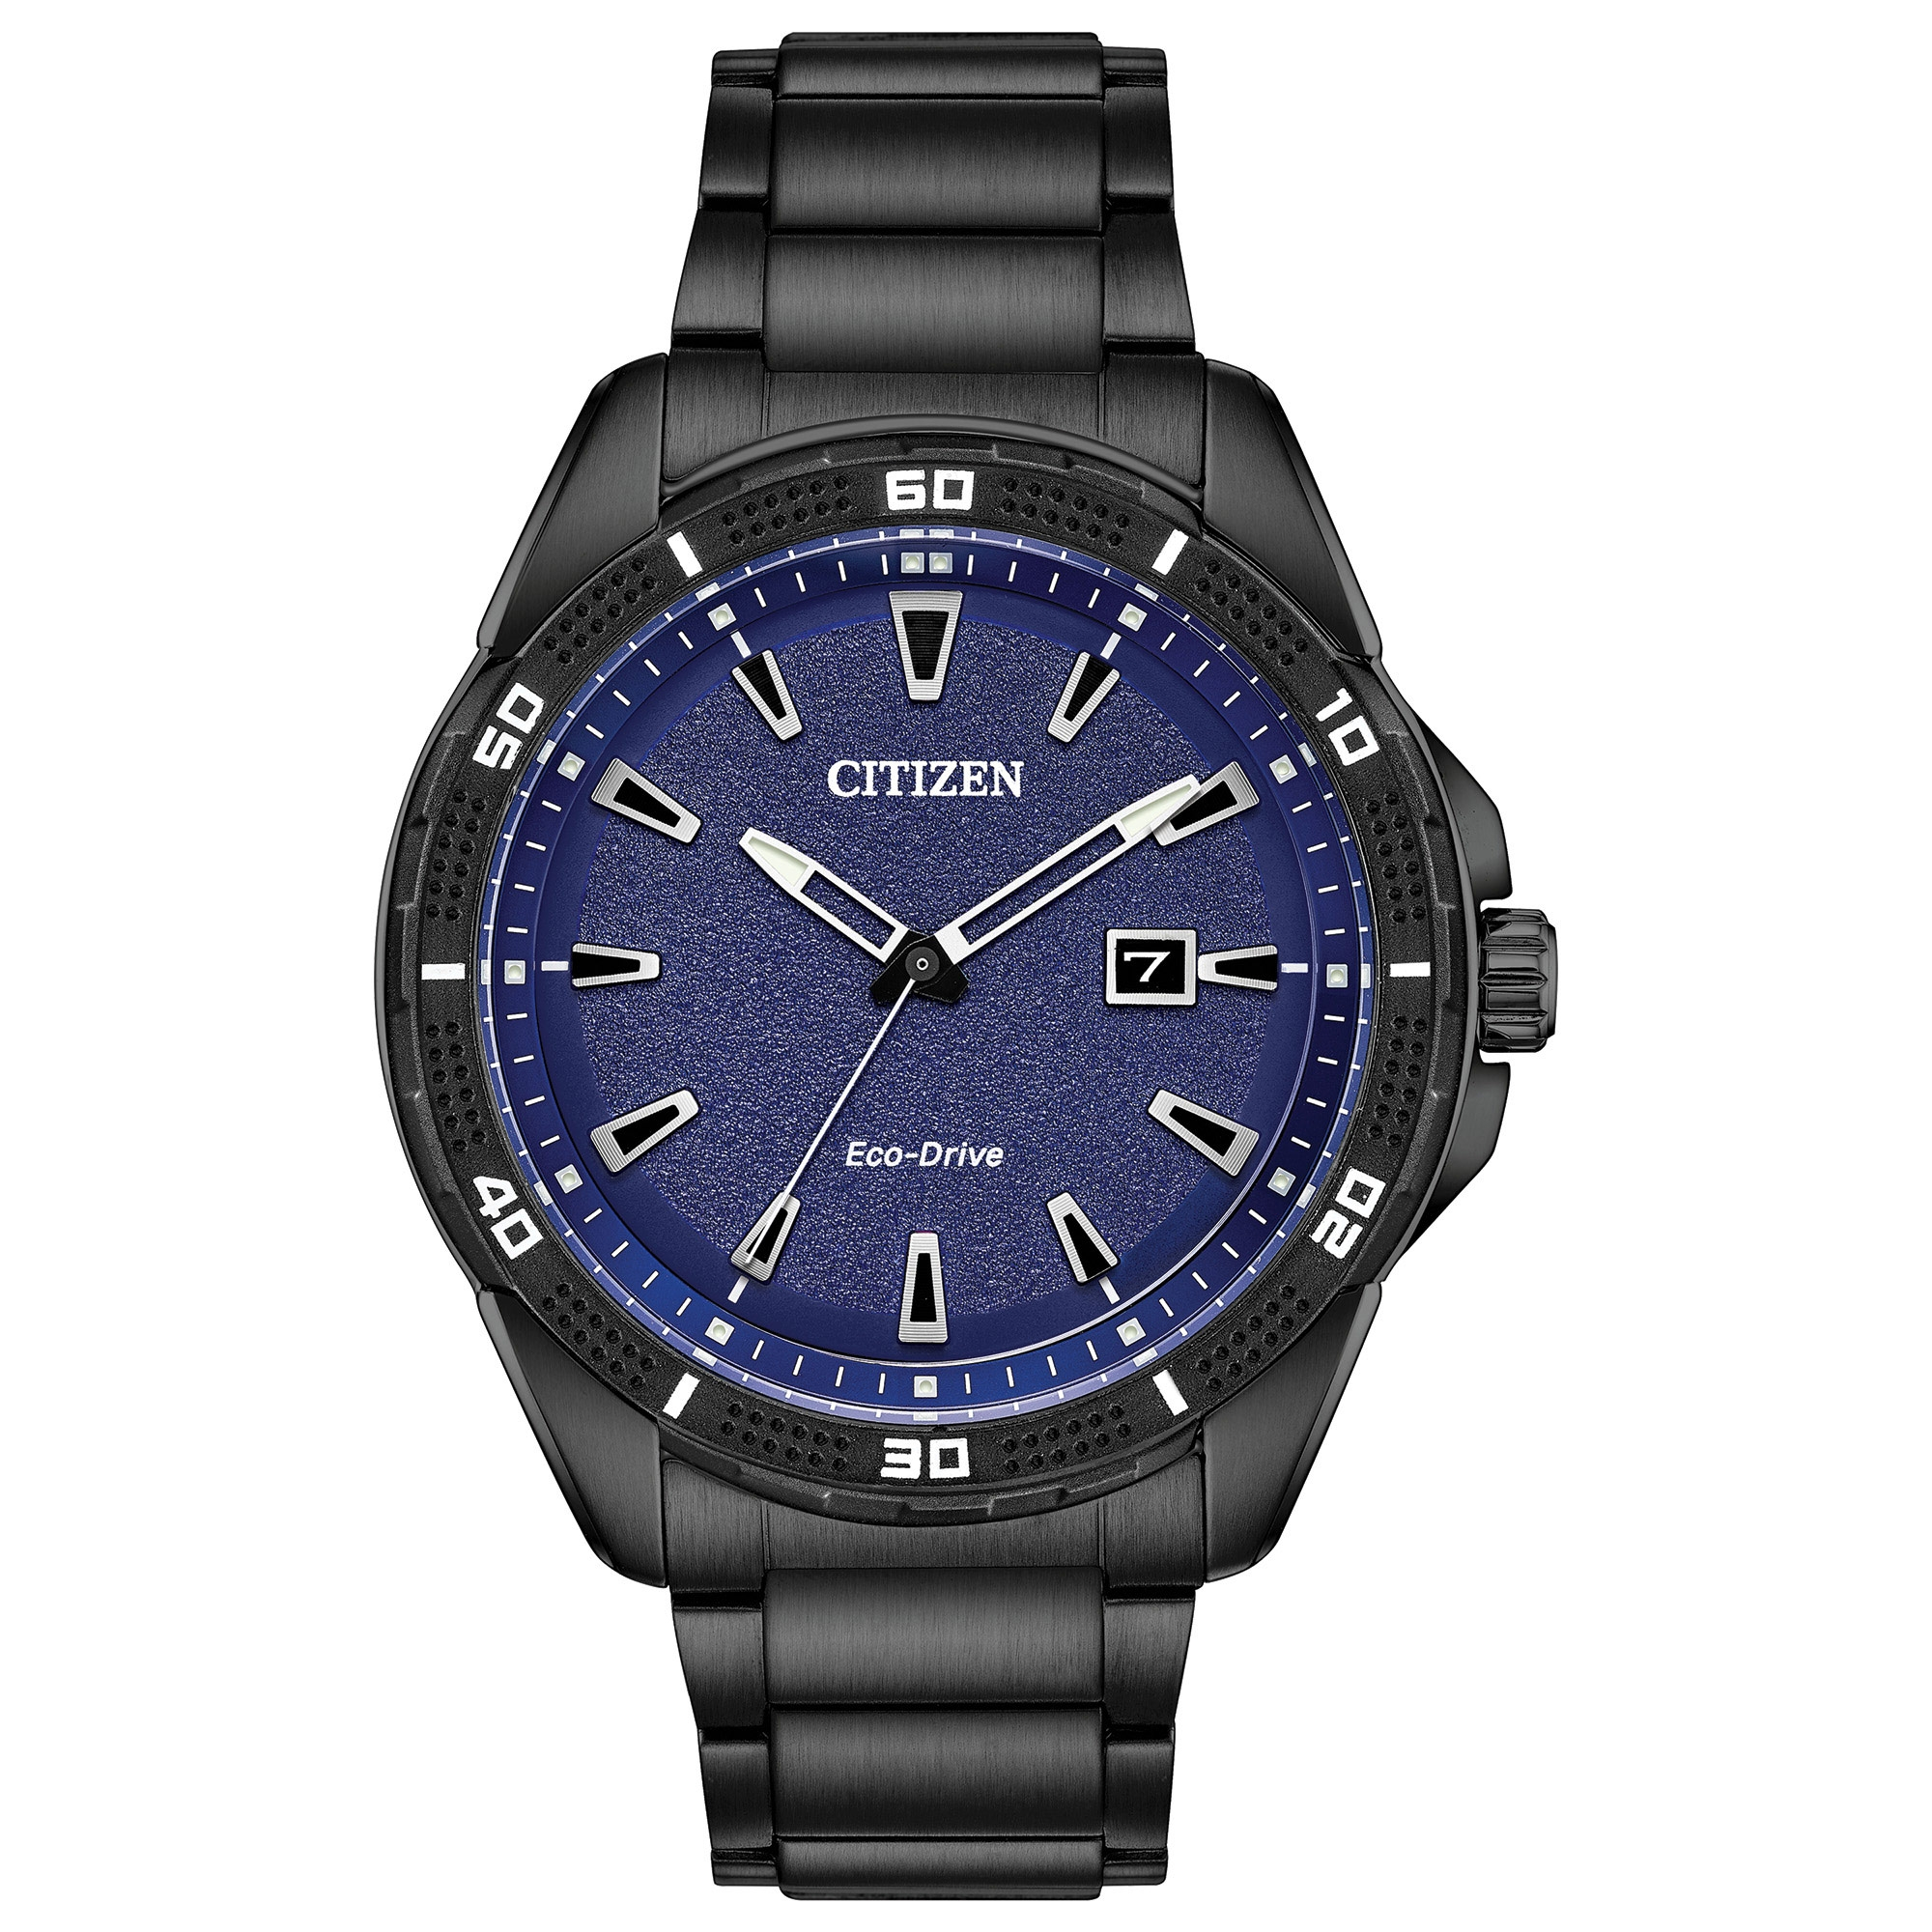 AW1585-55L Citizen AR - Action Required Eco-Drive Mens Watch